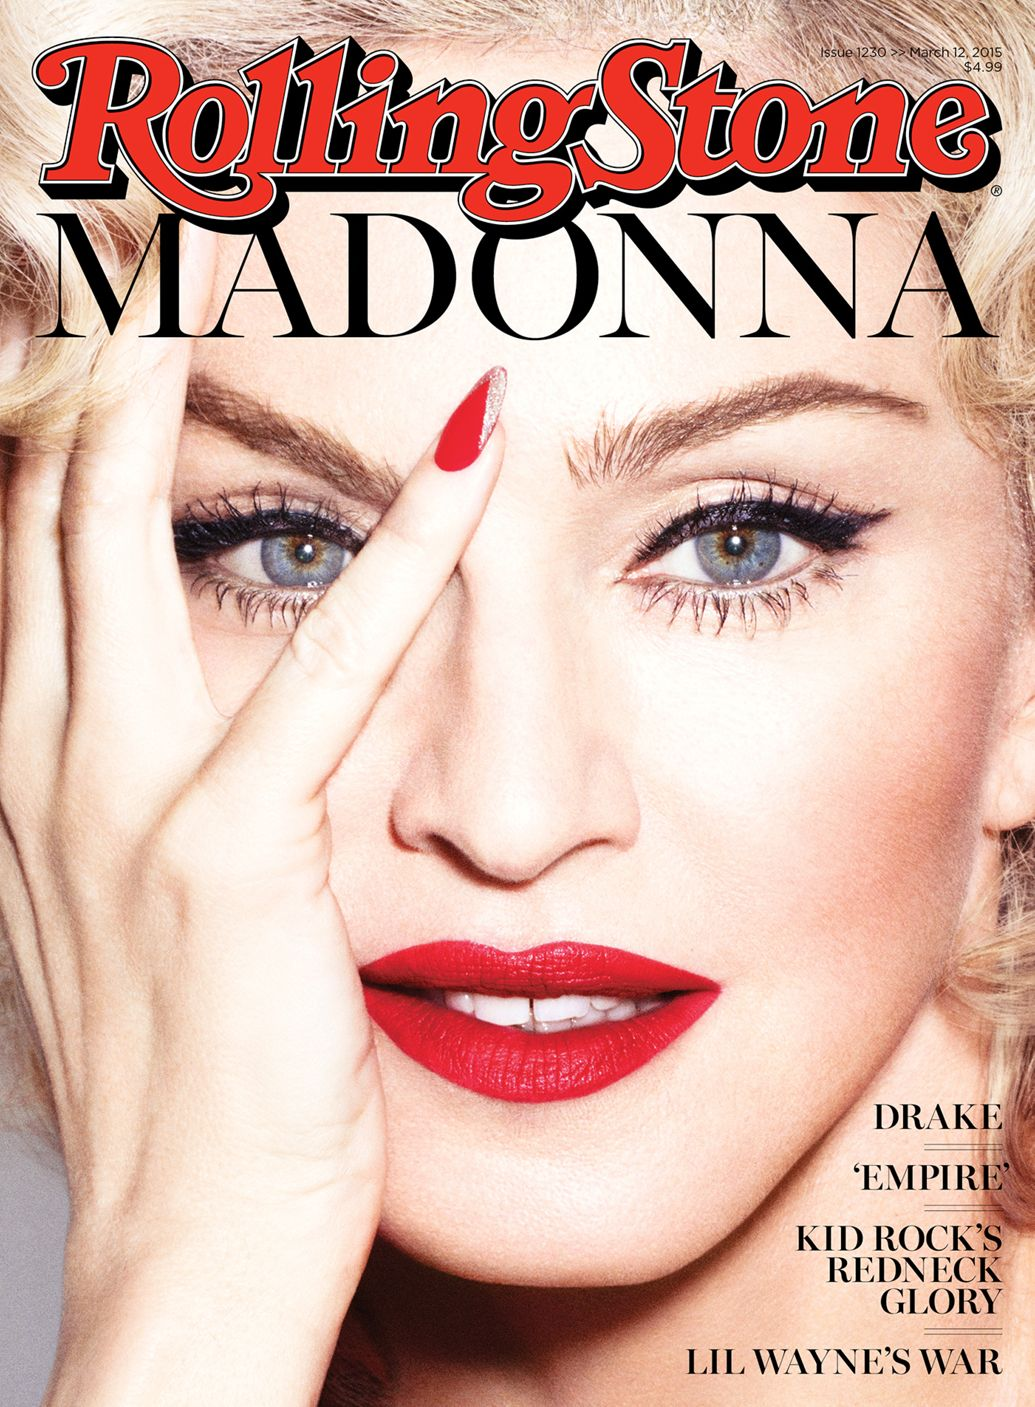 madonna rolling stone capa 2015 rebel heart